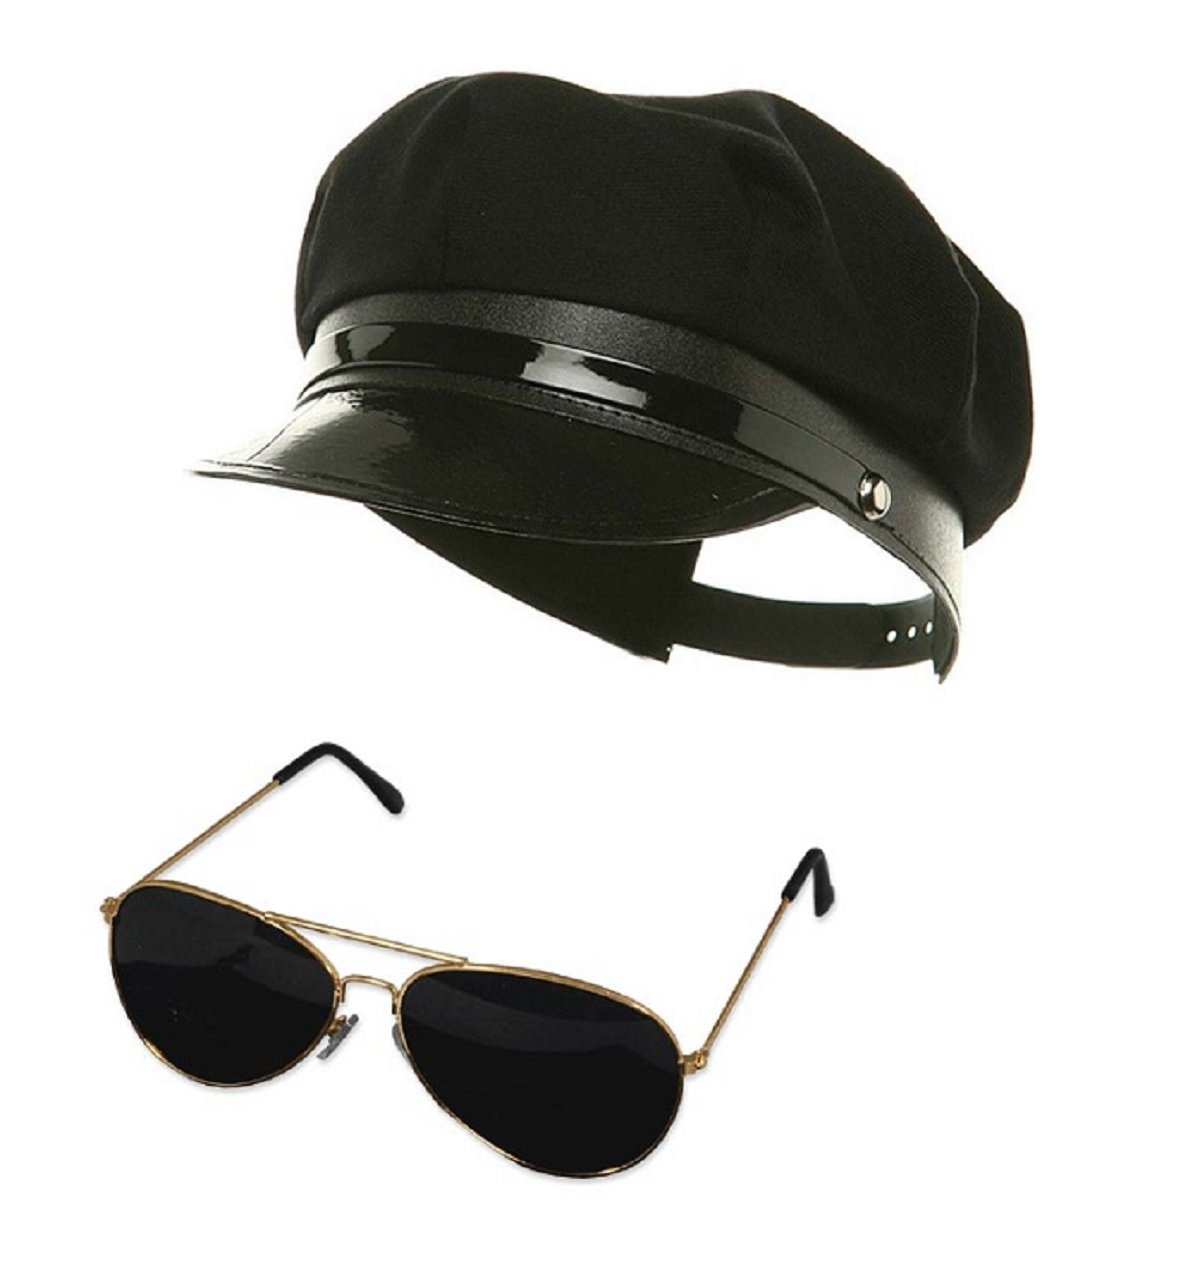 Black Chauffeur Chauffer Hat Aviator Glasses Police Officer Limo Driver Costume by Nicky Bigs Novelties